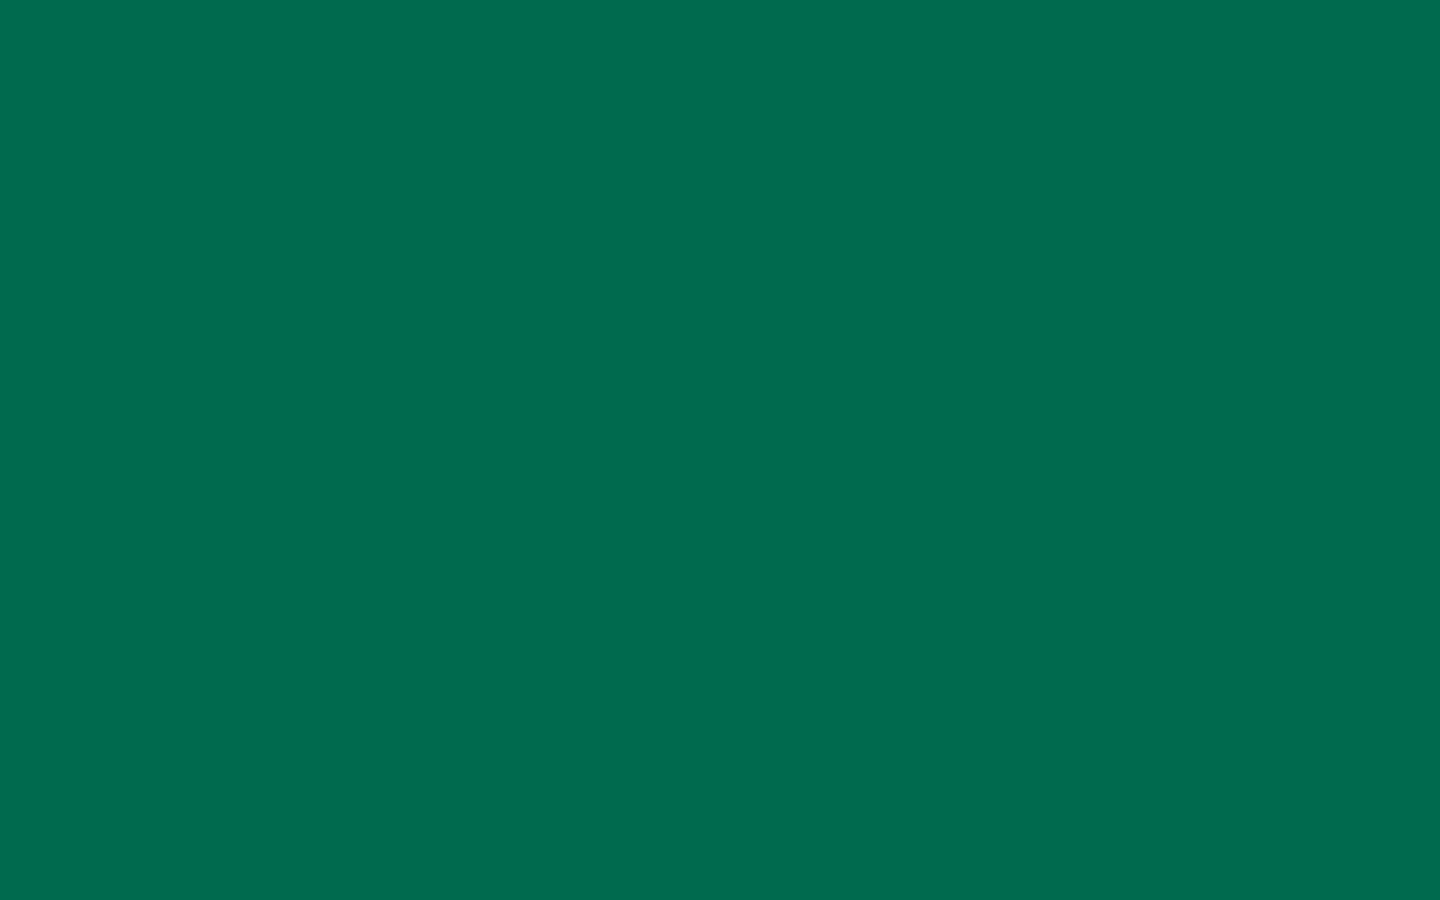 1440x900 Bottle Green Solid Color Background